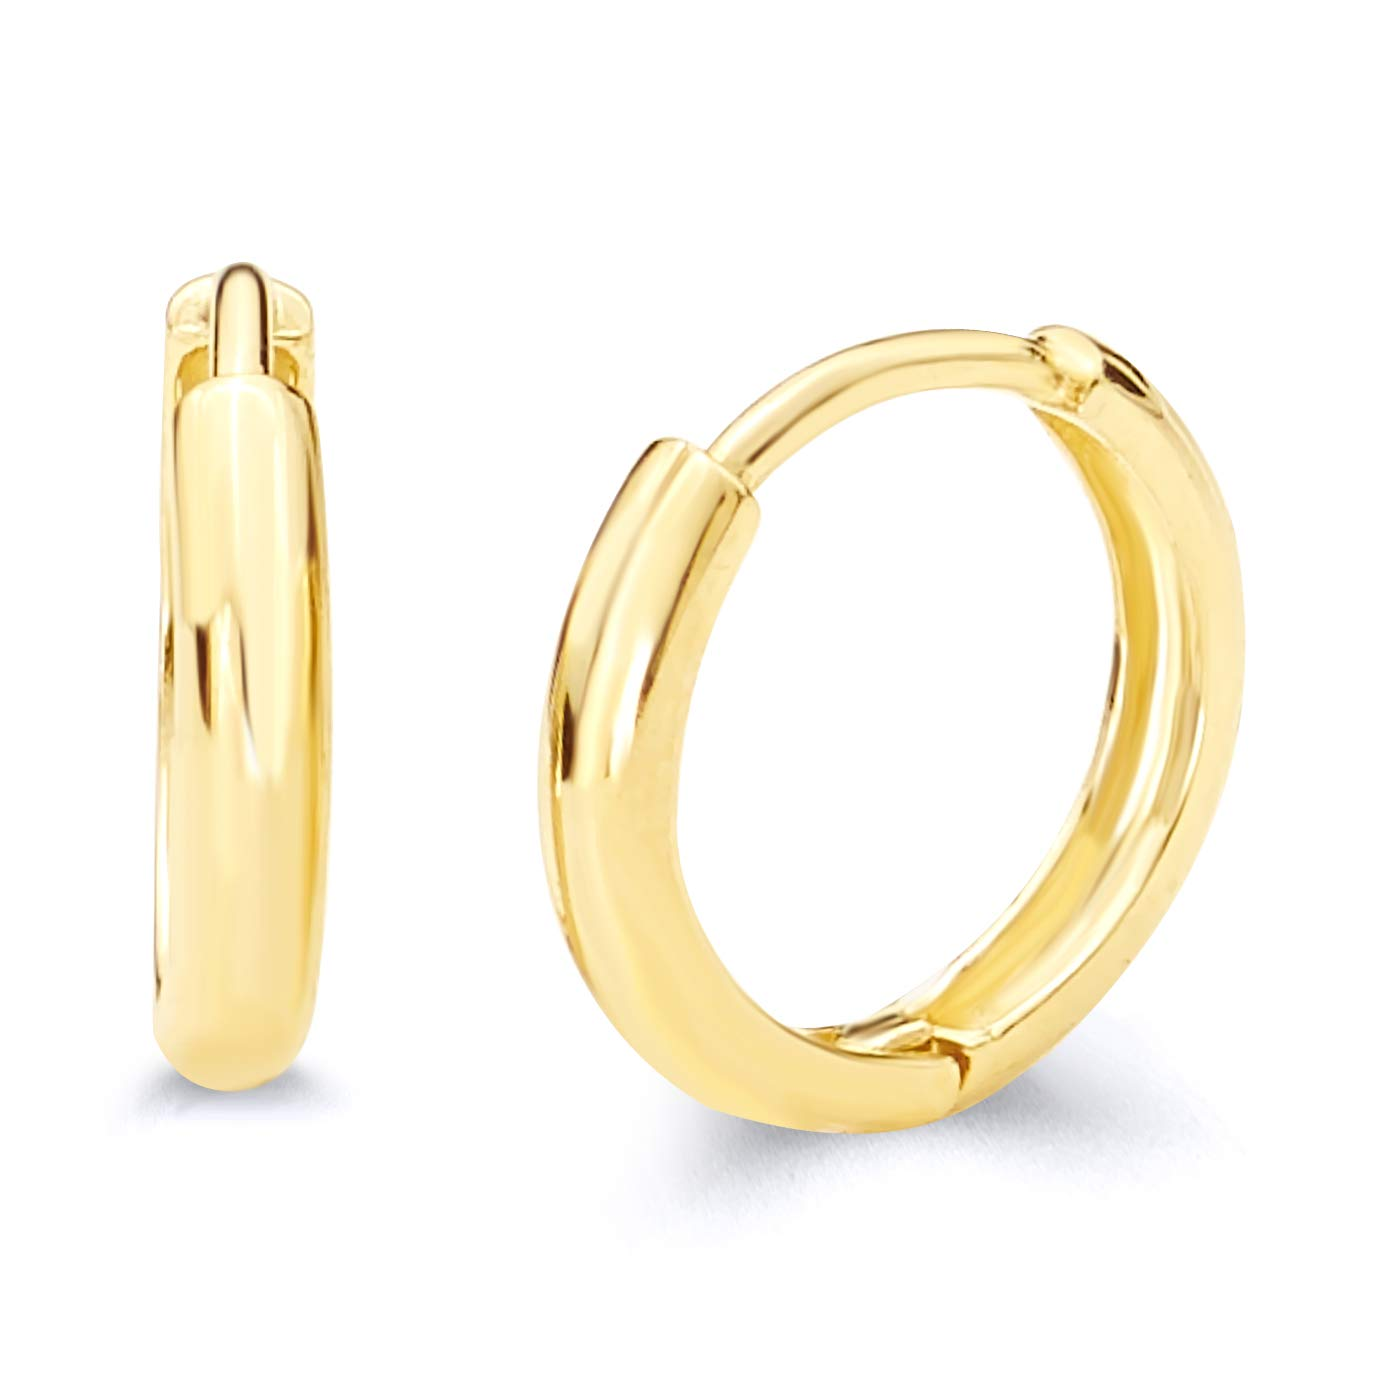 14k Yellow Gold 2mm Thickness Huggie Earrings (10 x 10 mm) by The World Jewelry Center